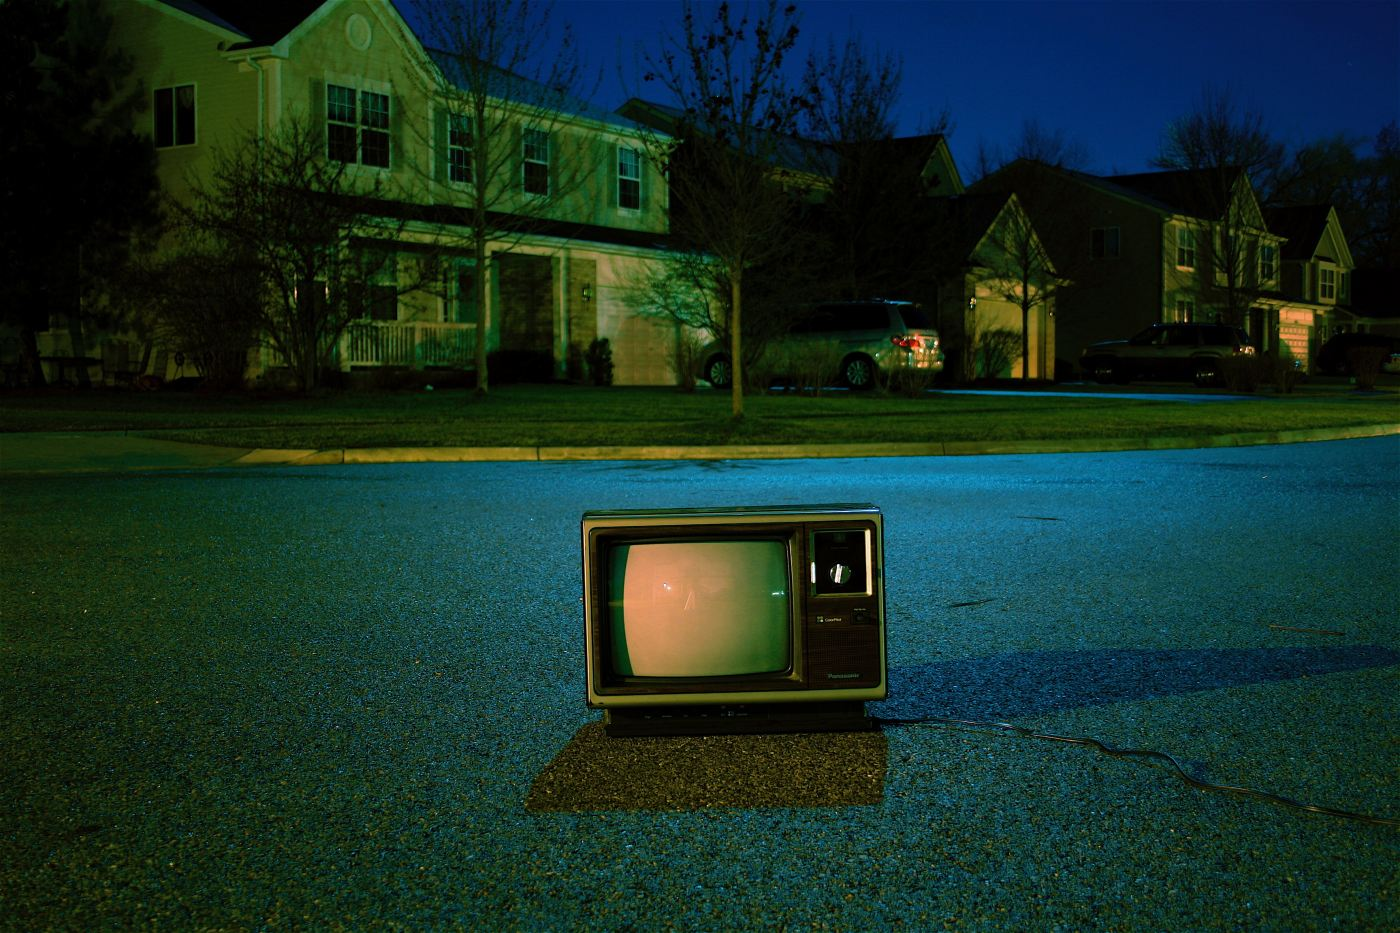 turned off vintage CRT television on road at night